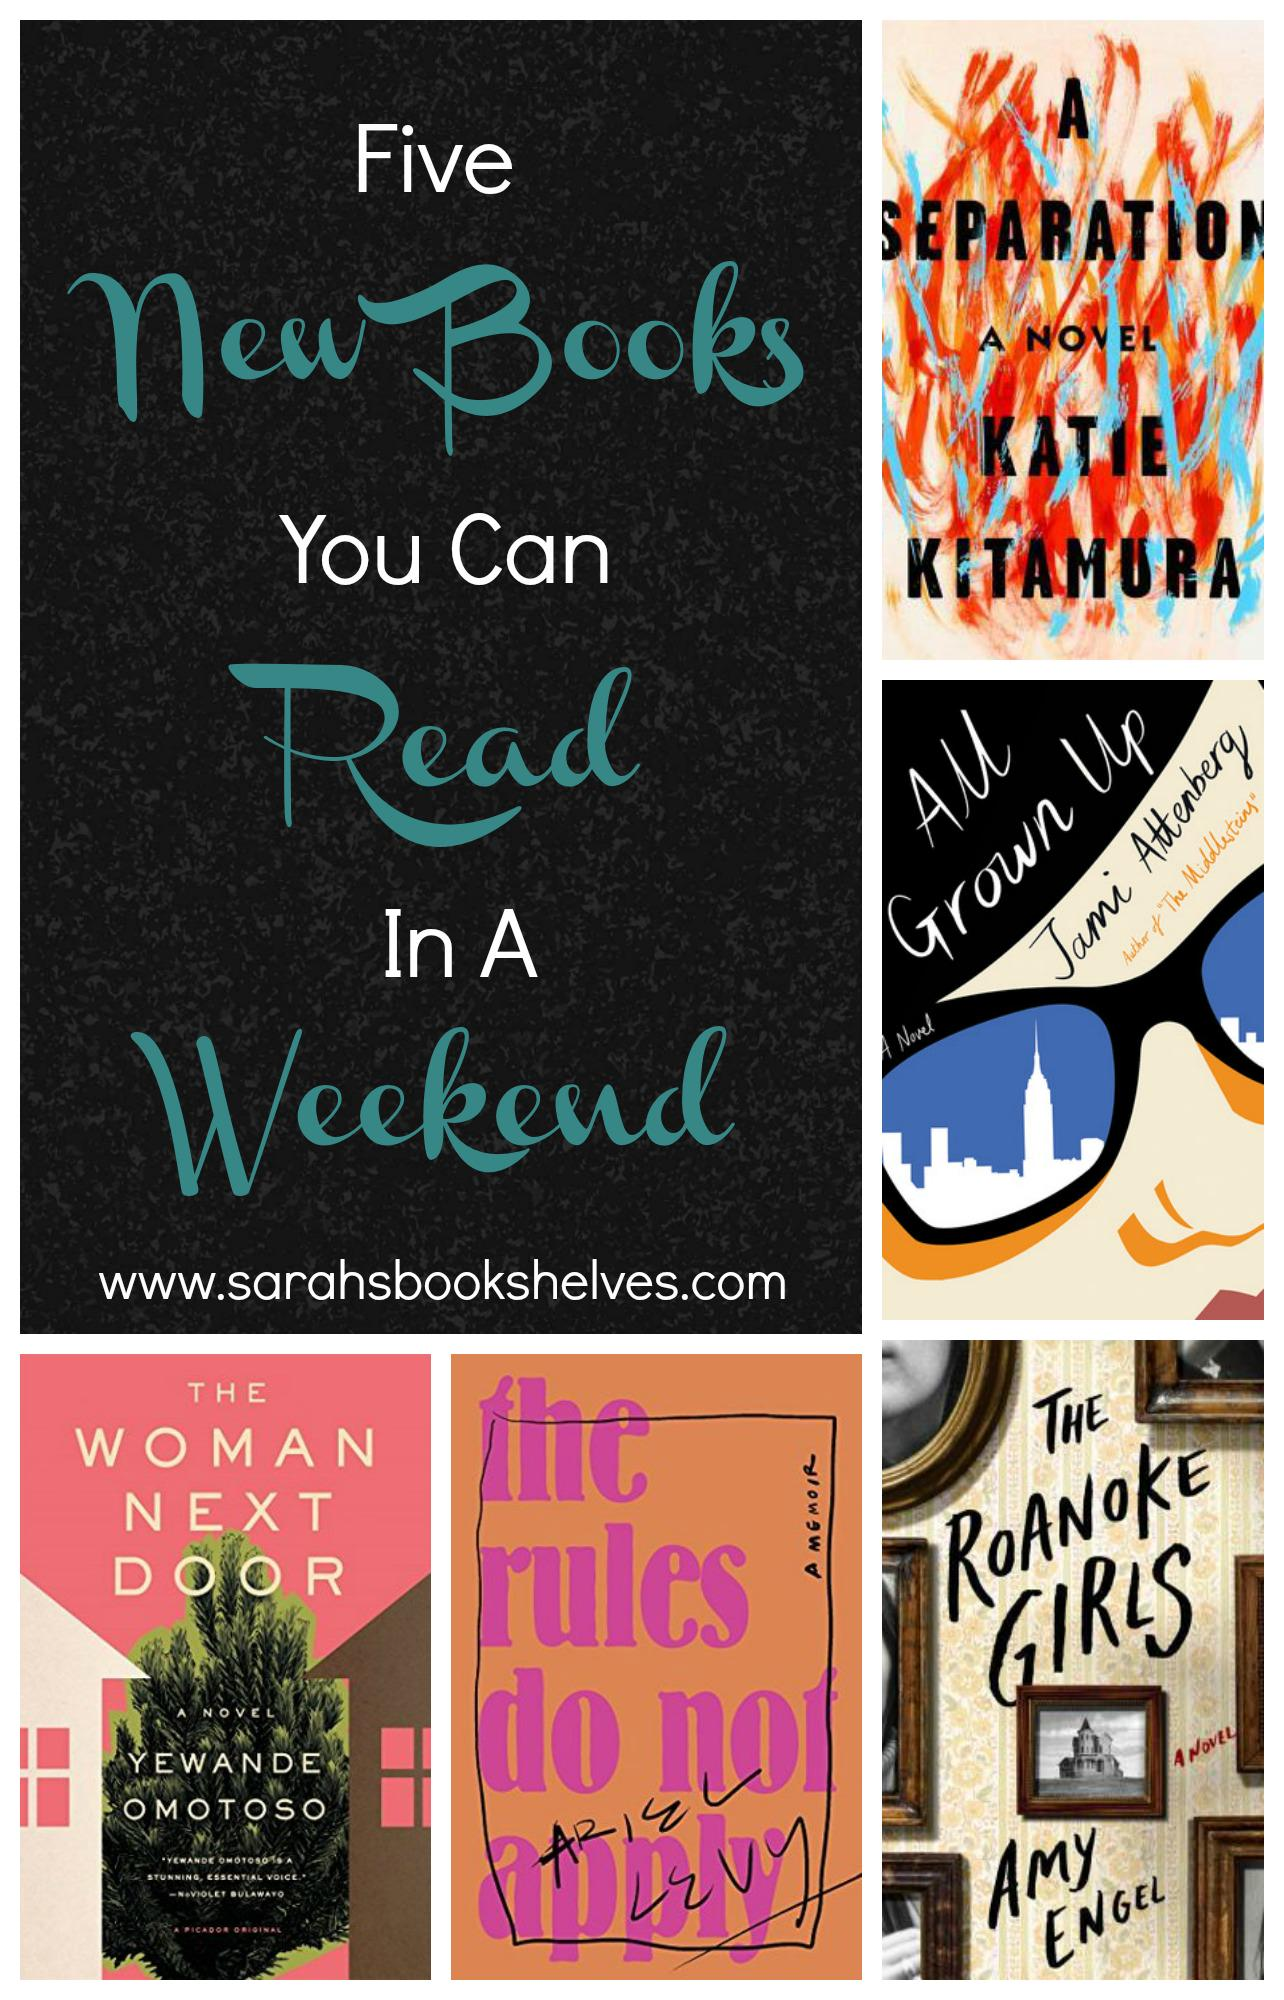 Are you planning to have a weekend of relaxing with a book? Here are 5 new books you can read in a weekend!